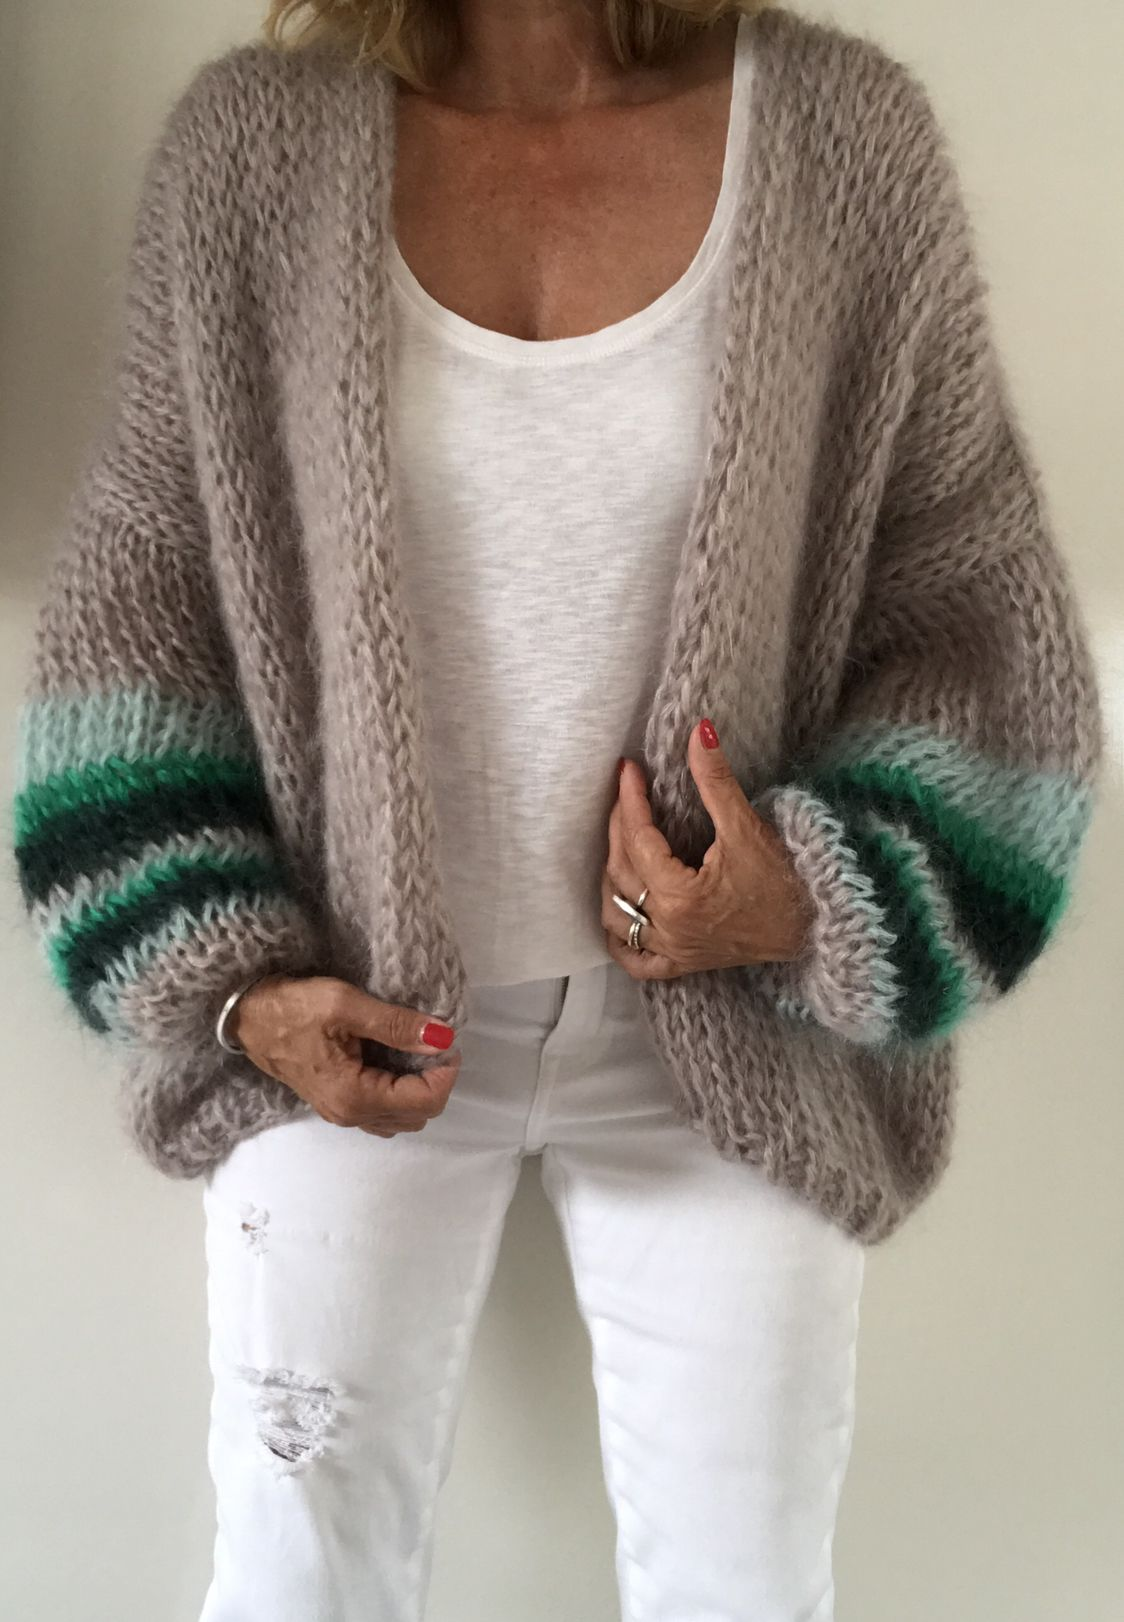 Pin by Alice Brzykcy on Sweater | Crochet clothes, Knit ...